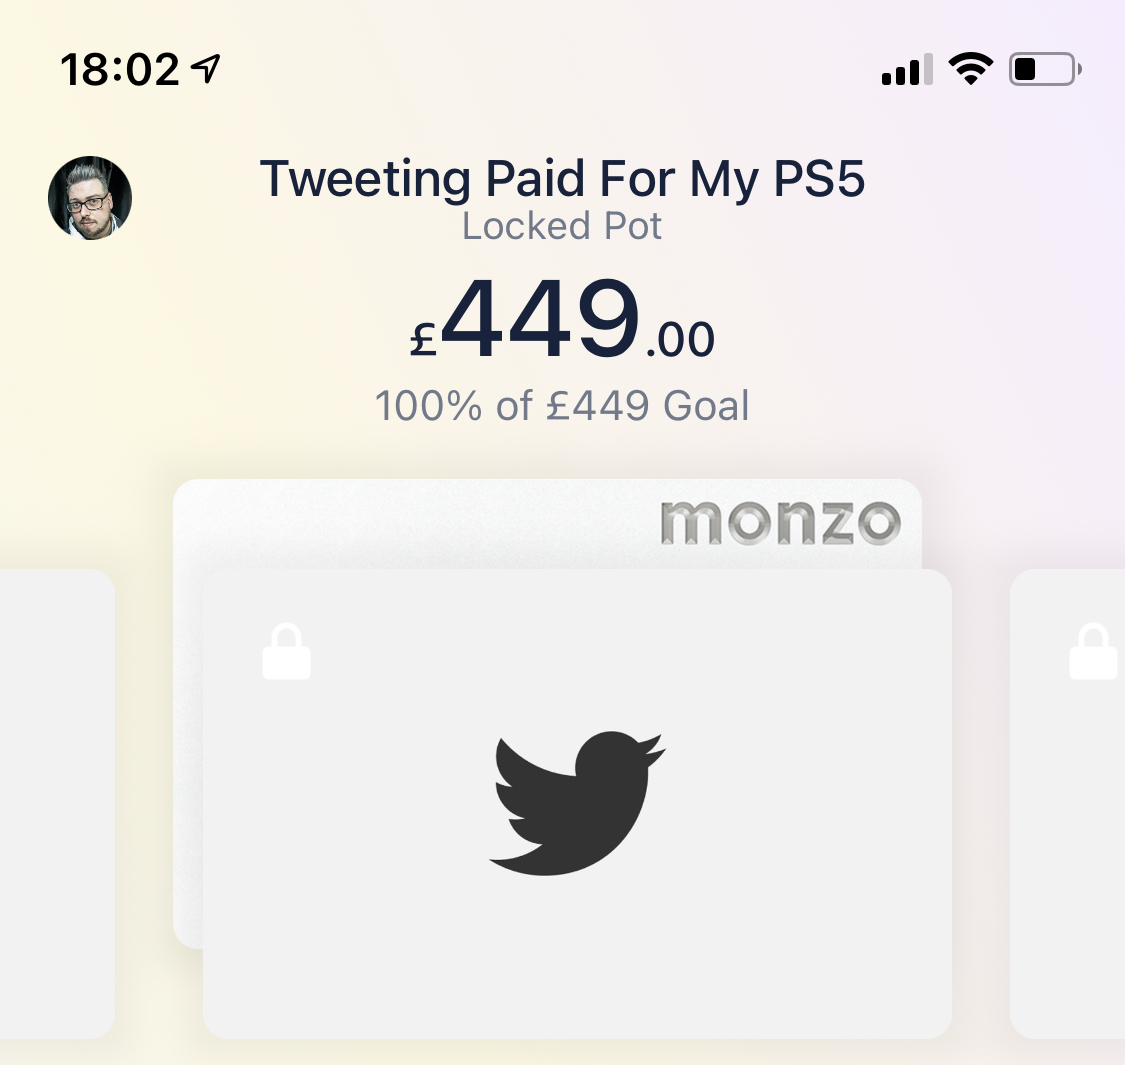 Image the monzo savings pot being 100% complete inside the iOS app